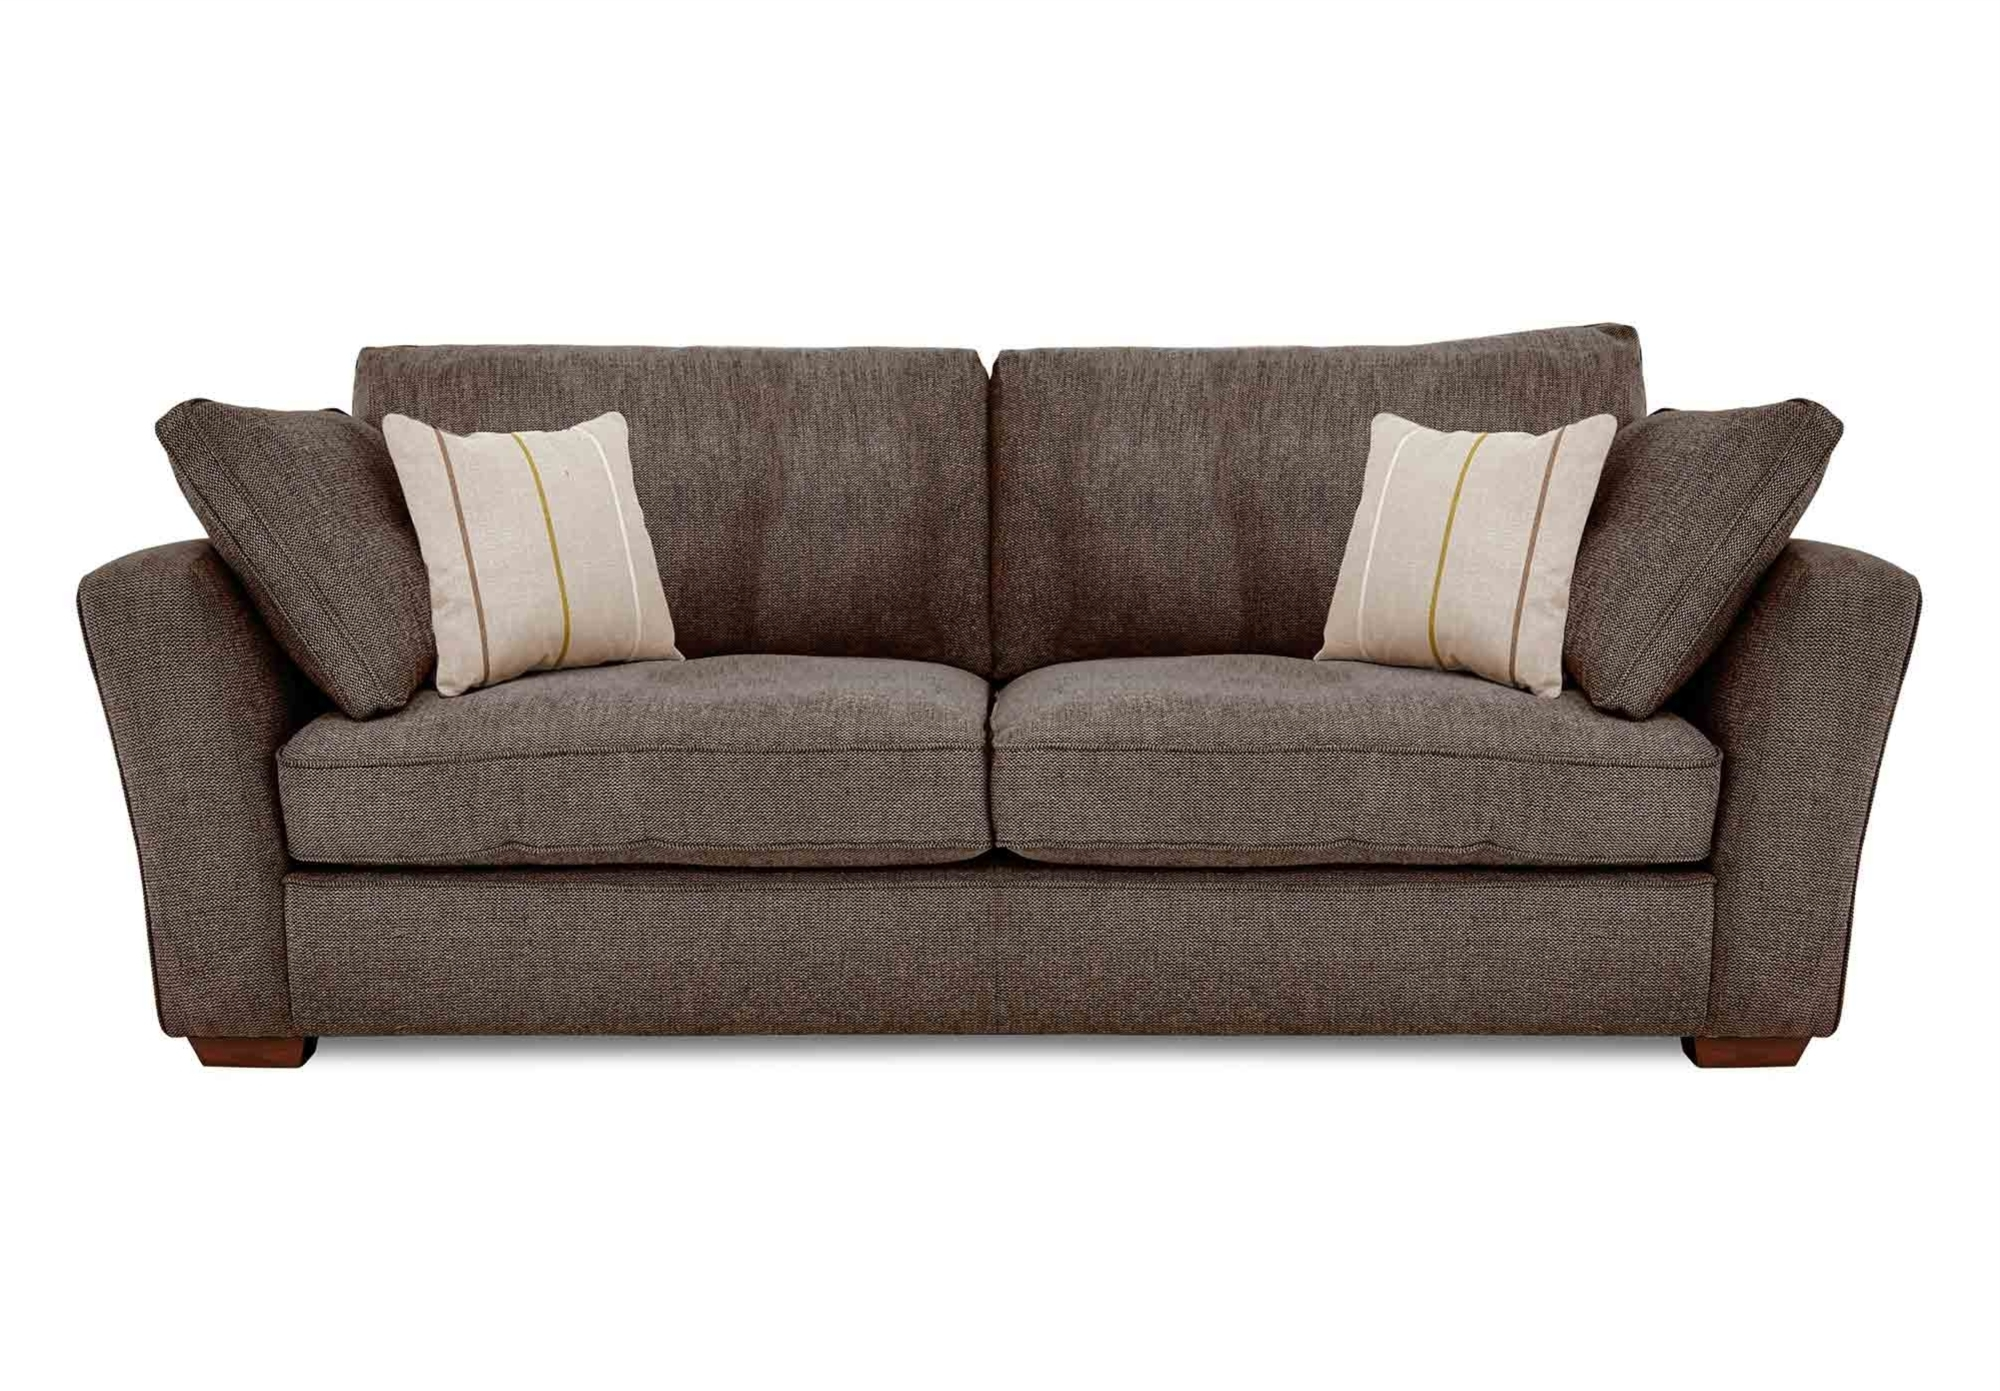 Large 4 Seater Sofas Intended For 2018 4 Seater Sofa – Otto – Gorgeous Living Room Furniture From (View 9 of 15)